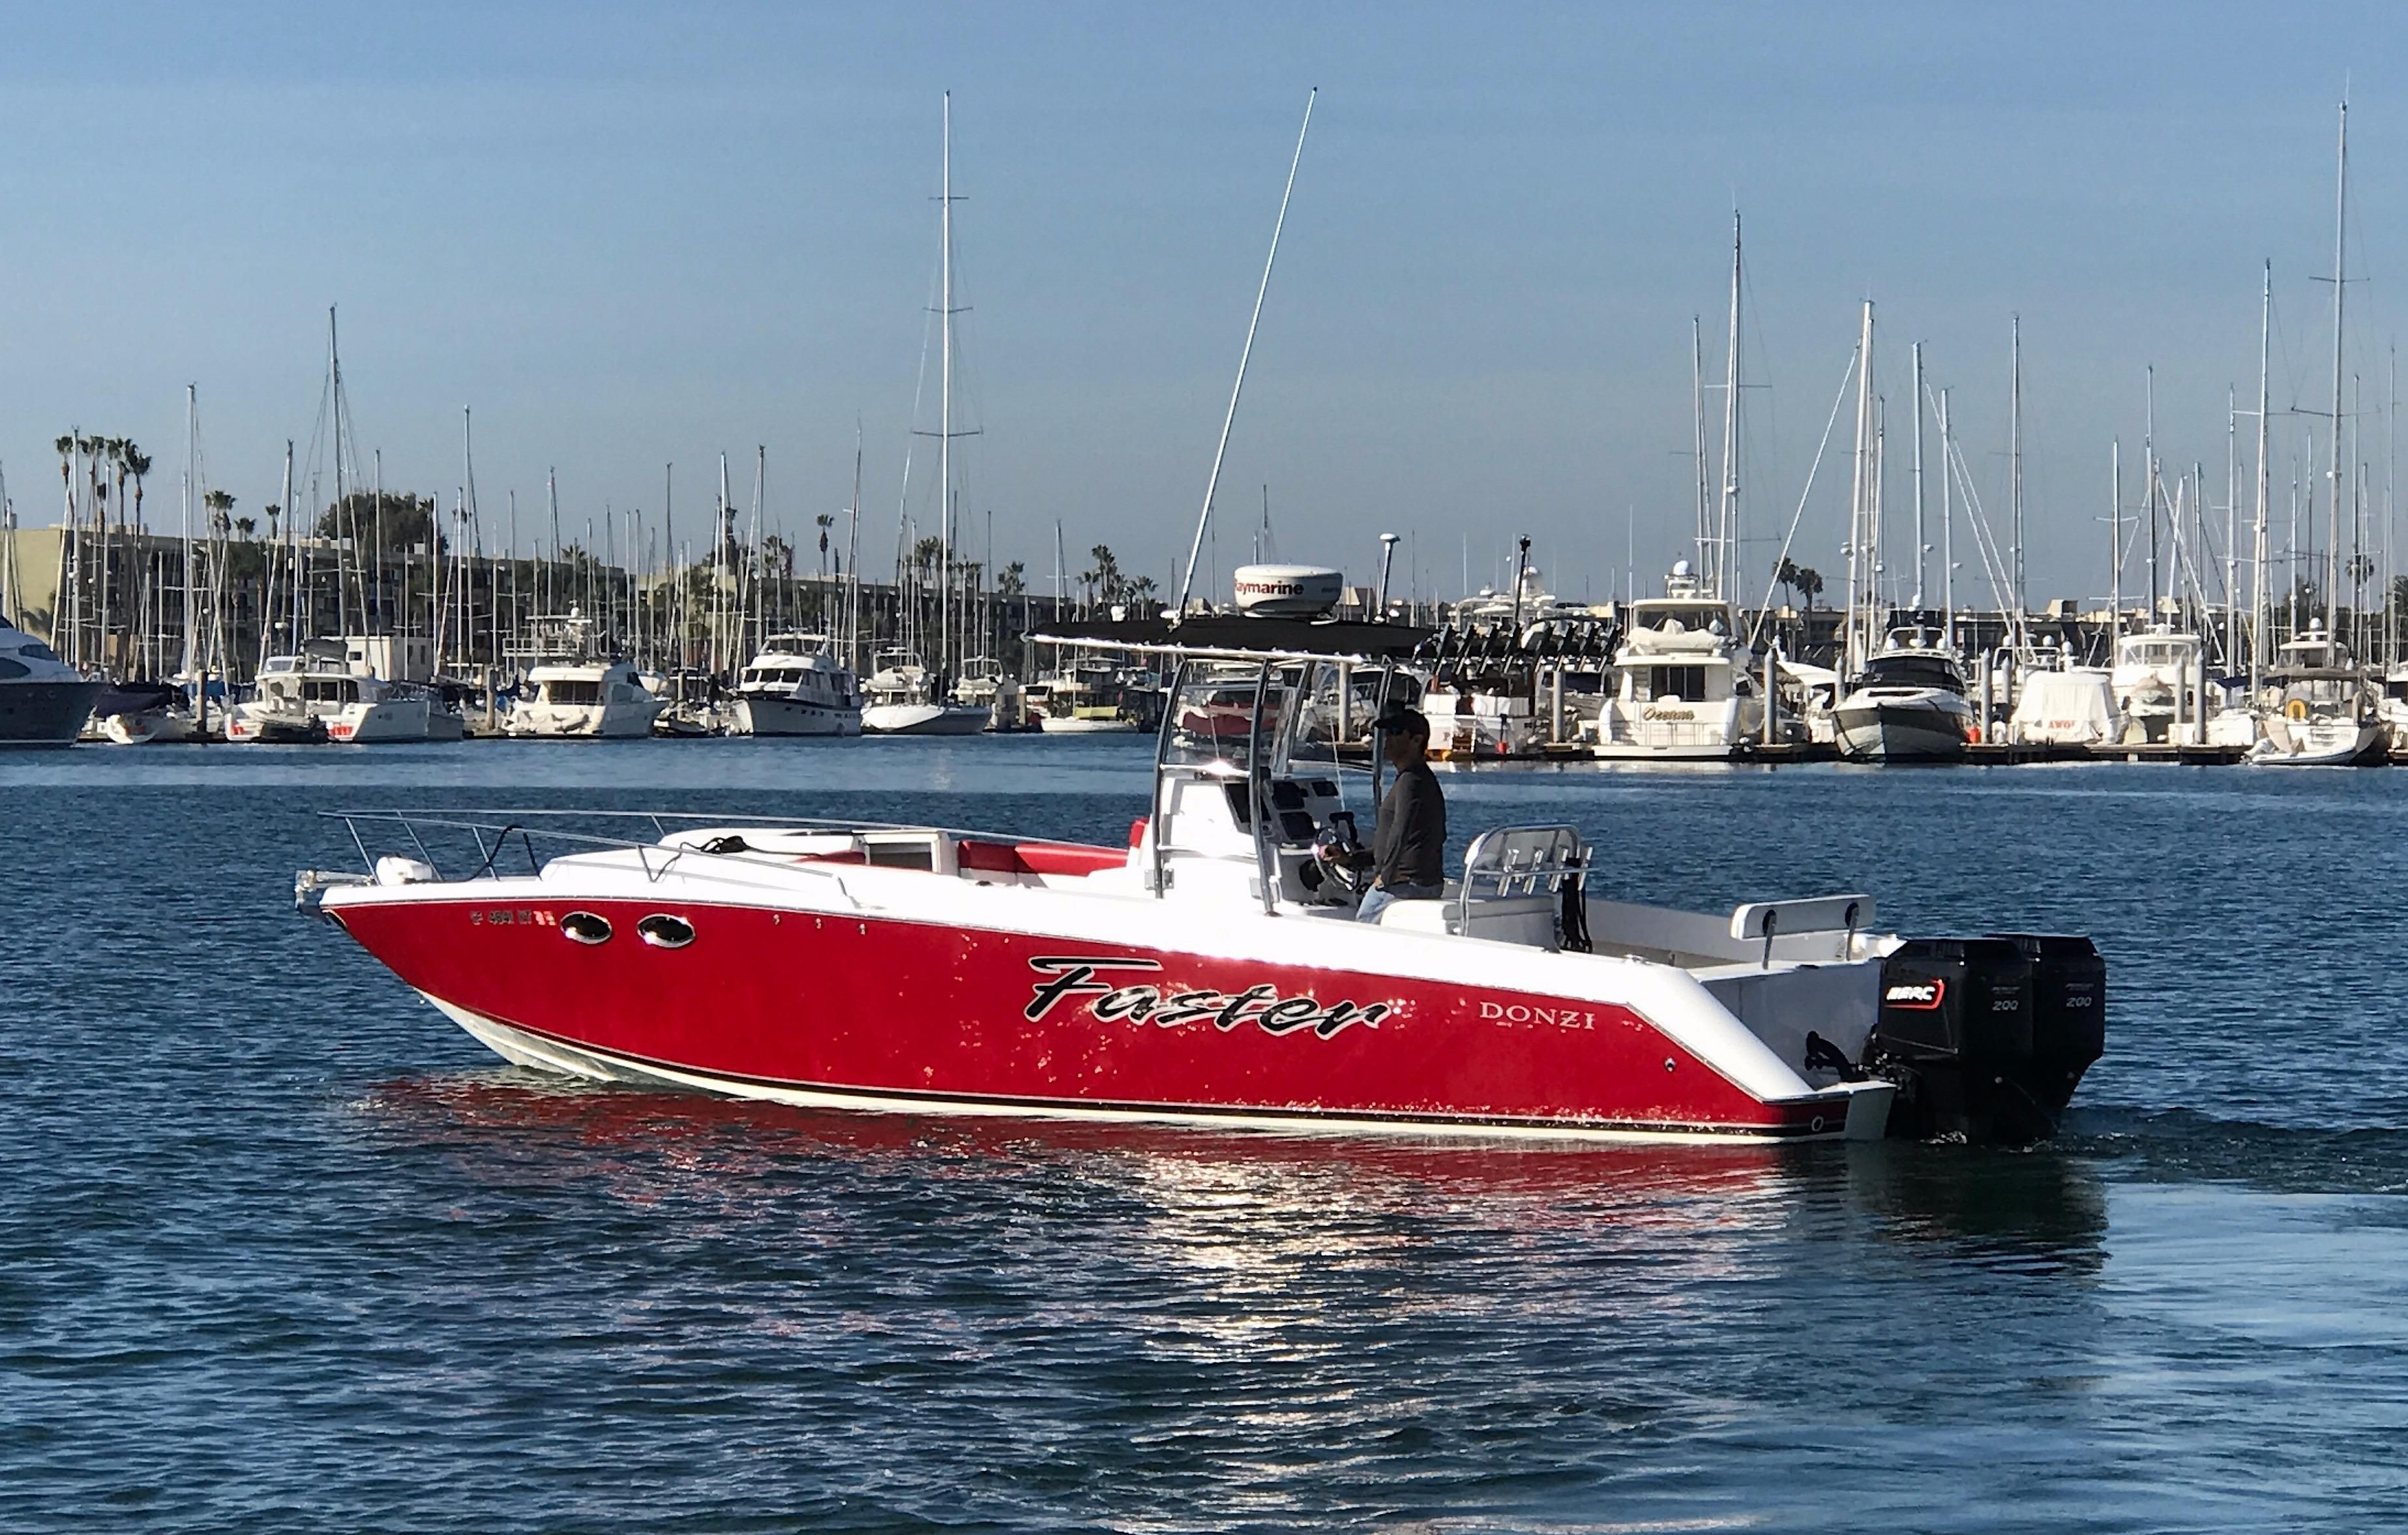 1987 donzi f 33 cuddy cabin power boat for sale www for Marina del rey fishing charter